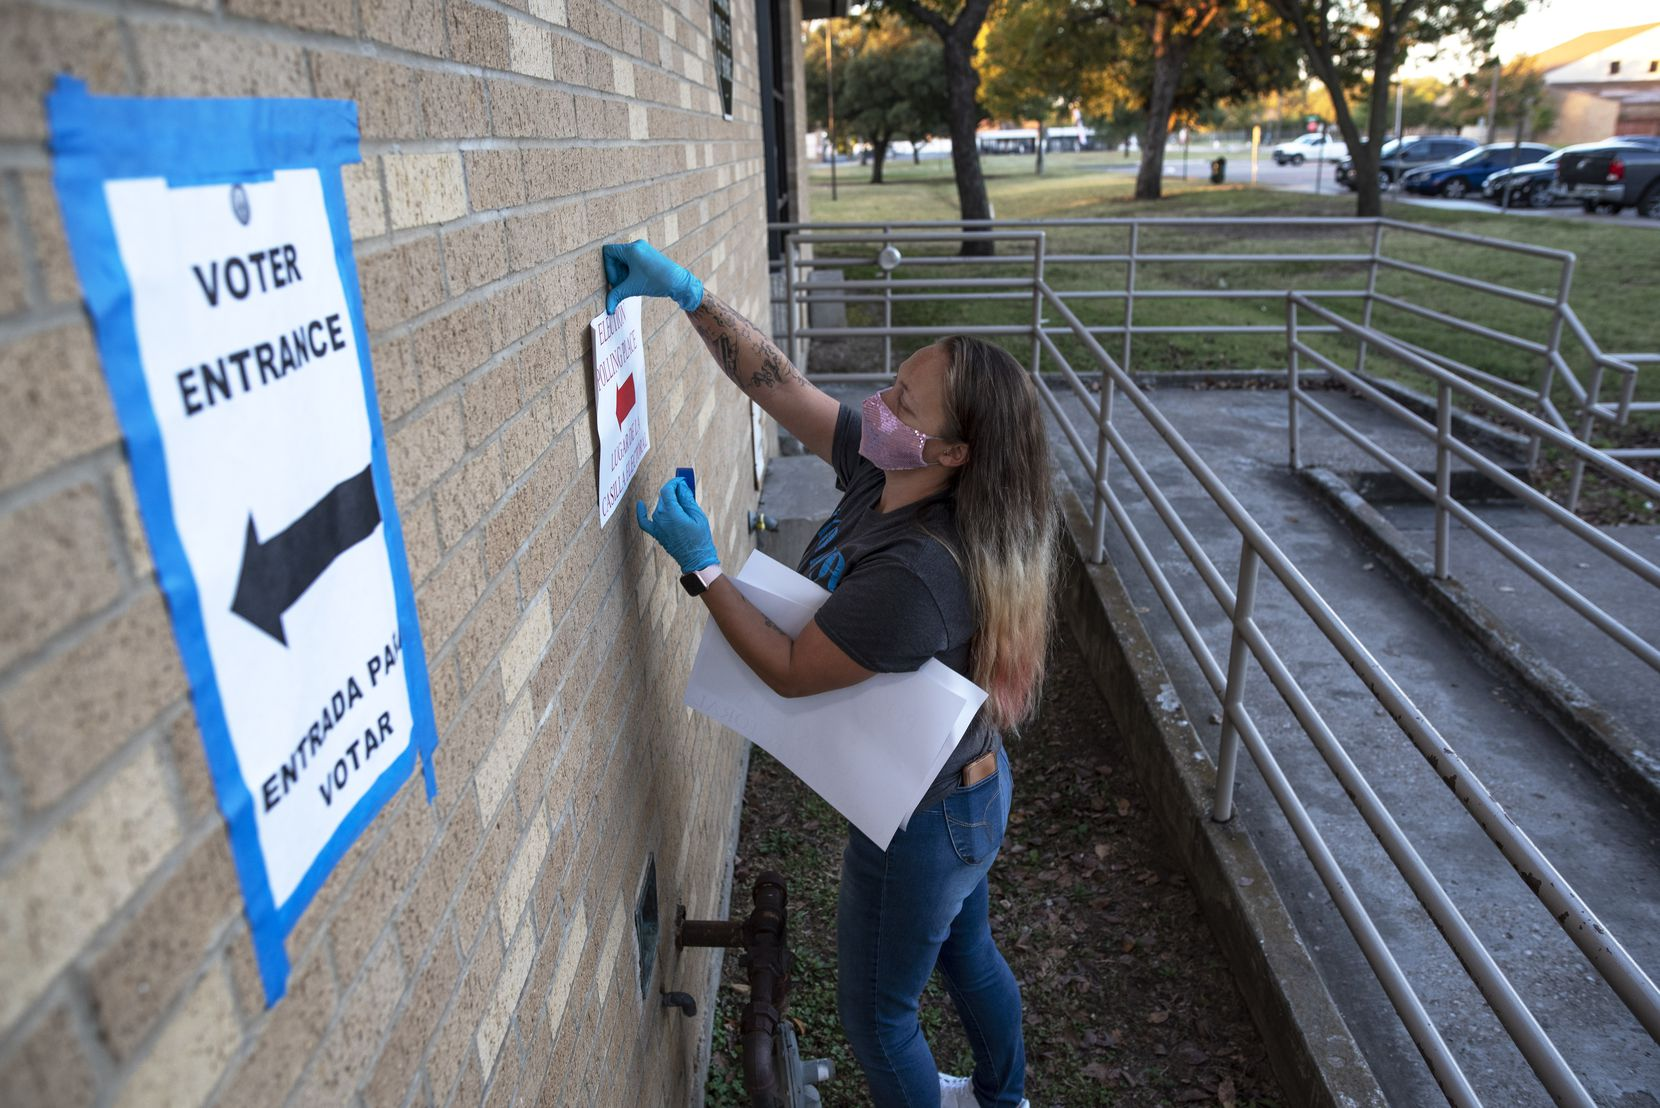 Poll worker Juliana Lee posts entrance signs displaying where to vote outside of the polling location at the Martin Luther King Recreation Center in Dallas.